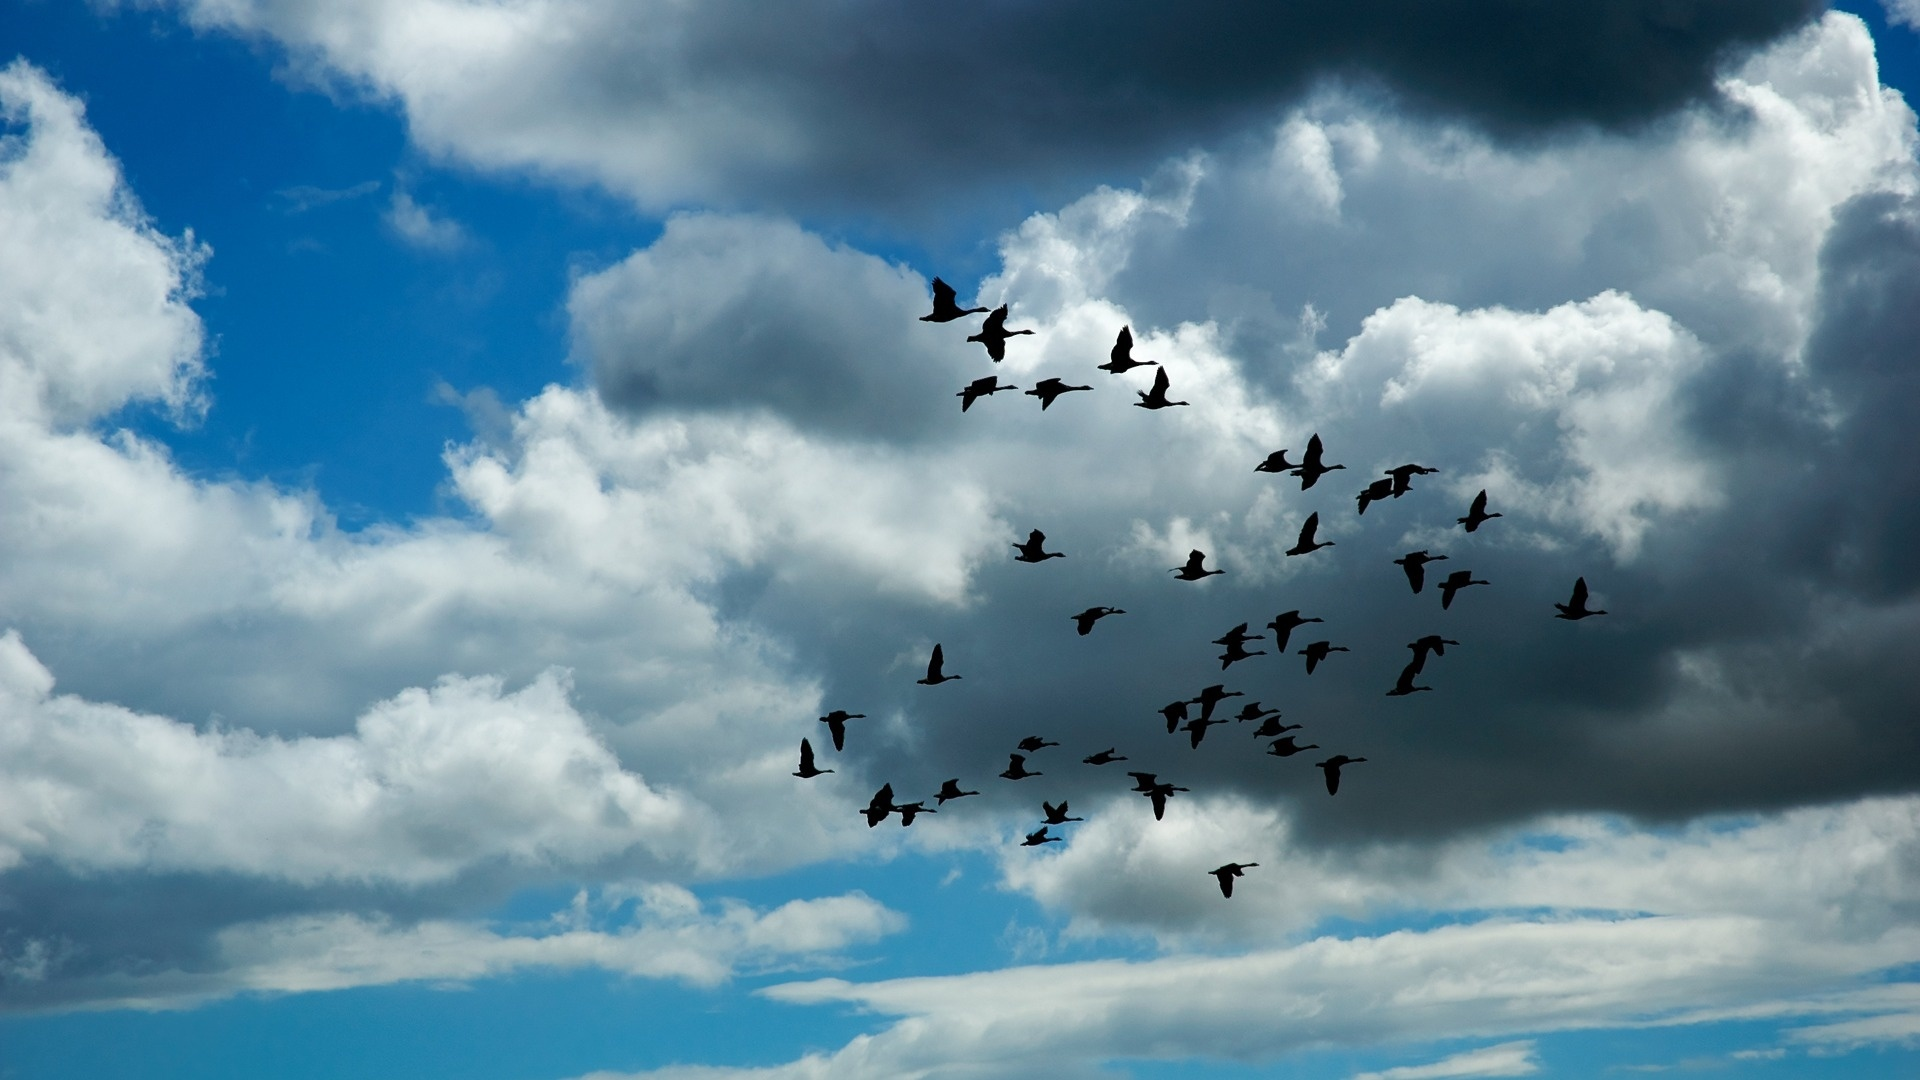 Wedge Birds In The Sky Background